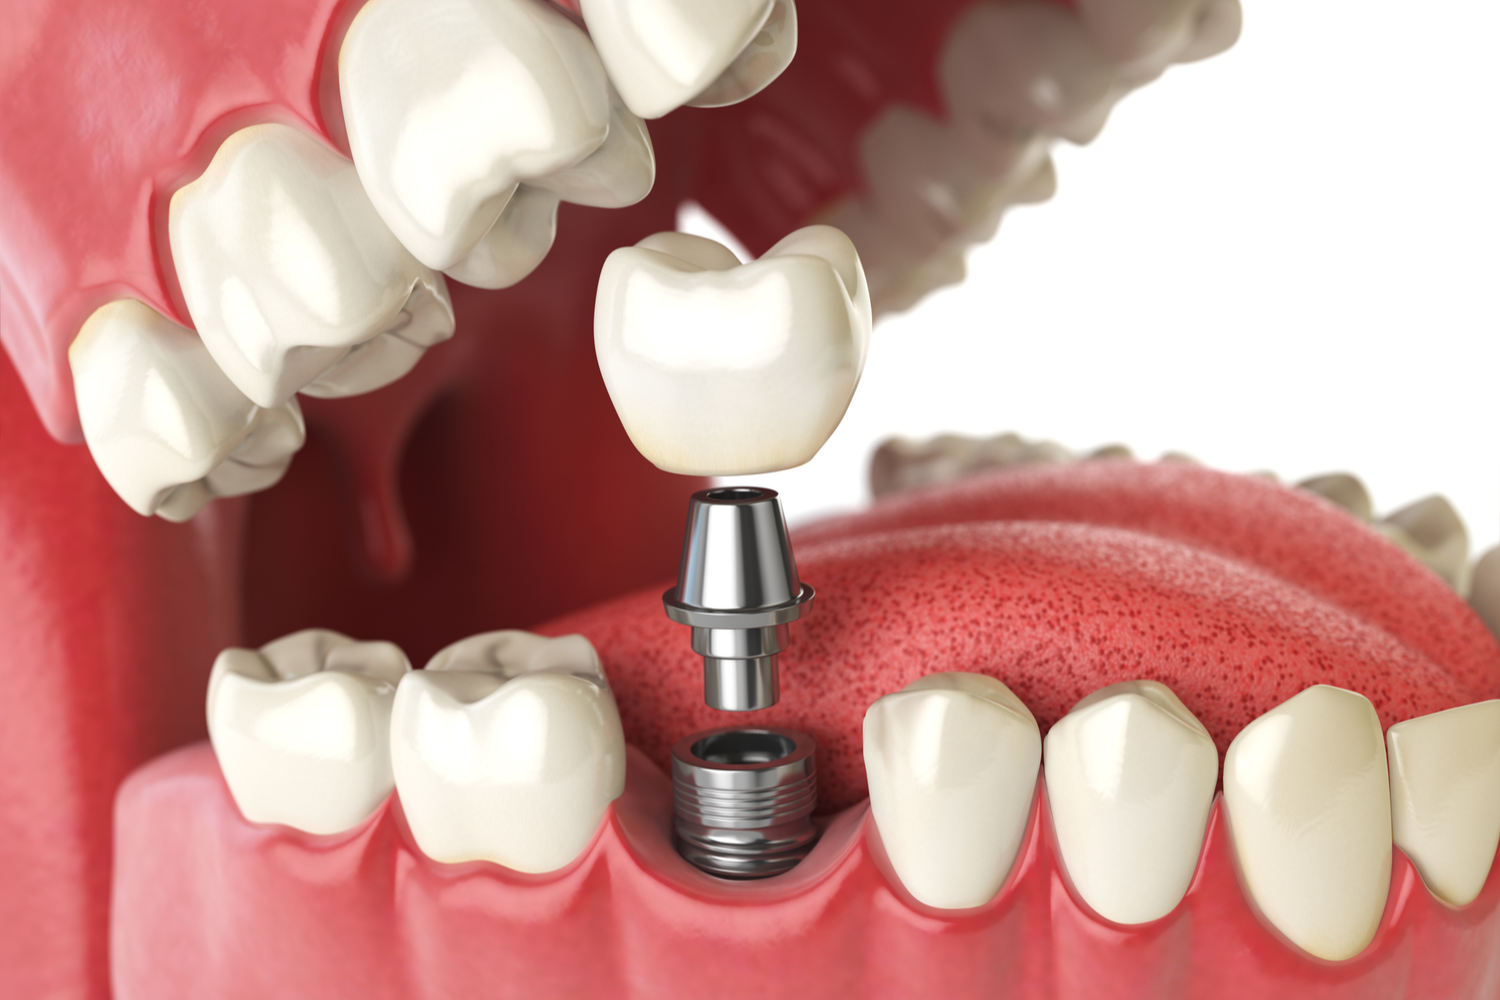 Dental Implant Surgery Recovery